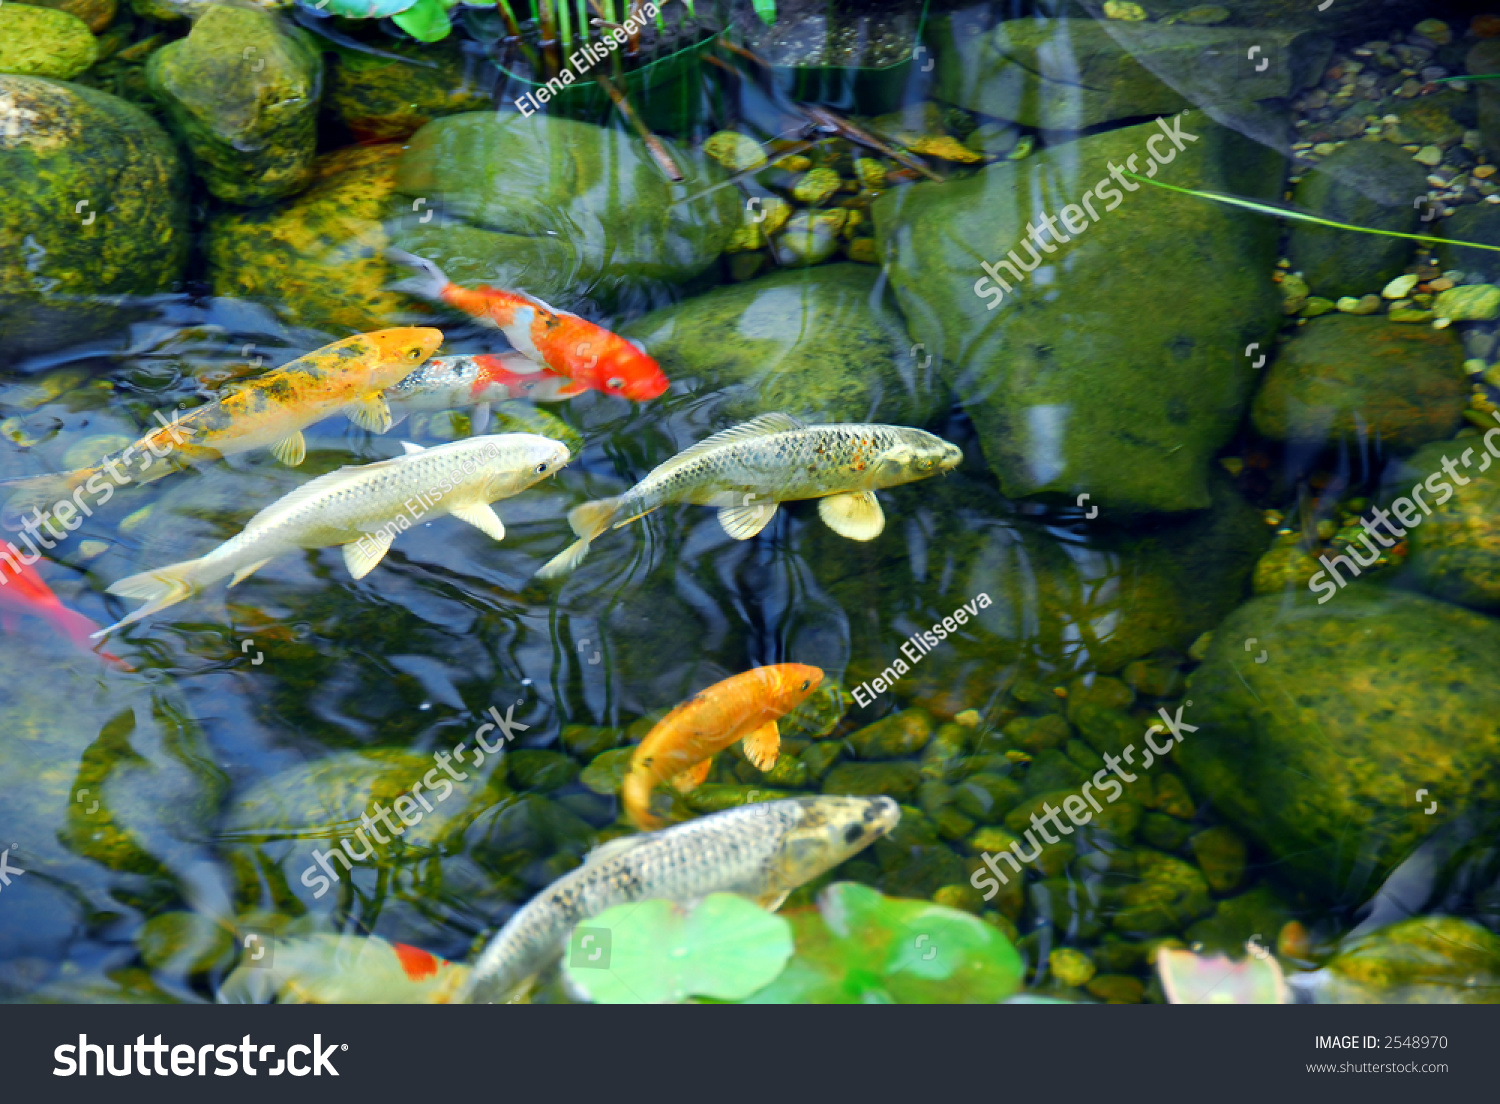 Koi Fish In A Natural Stone Pond Stock Photo 2548970 Shutterstock